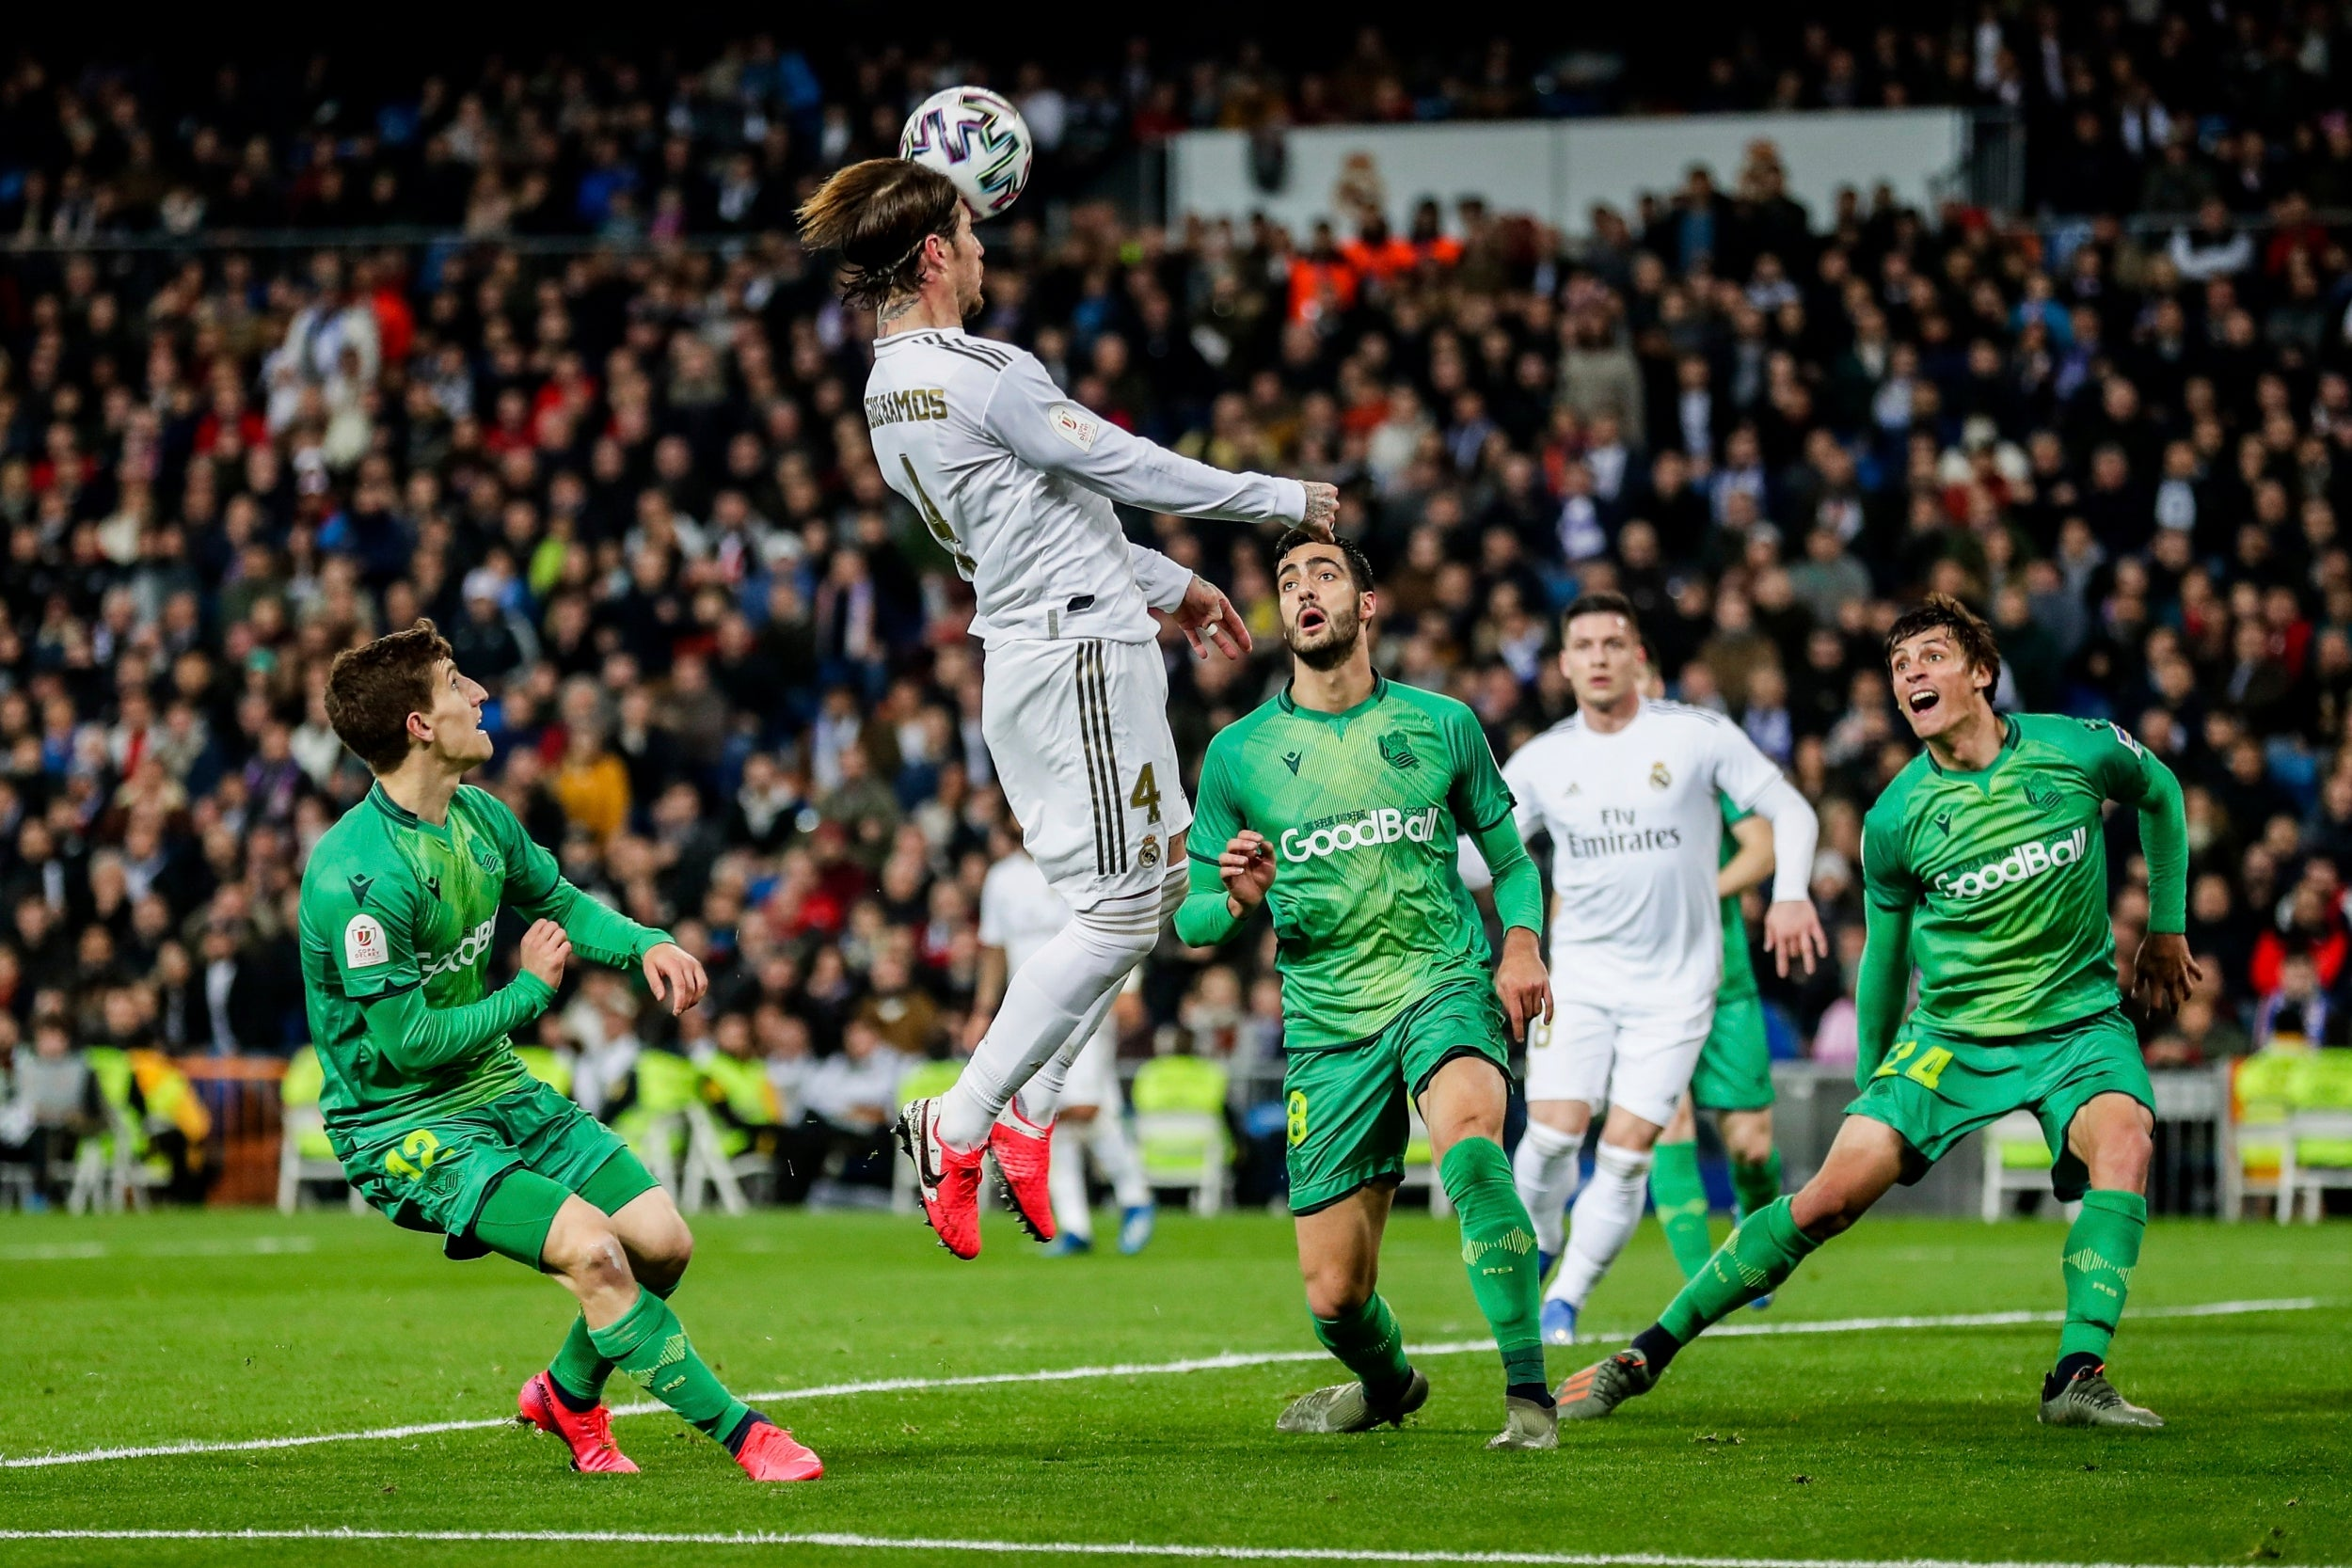 Real Madrid knocked out from Copa del Rey by Real Sociedad after La Real run away Santiago Bernabeu with a 3-4 victory in del Rey quarter-finals